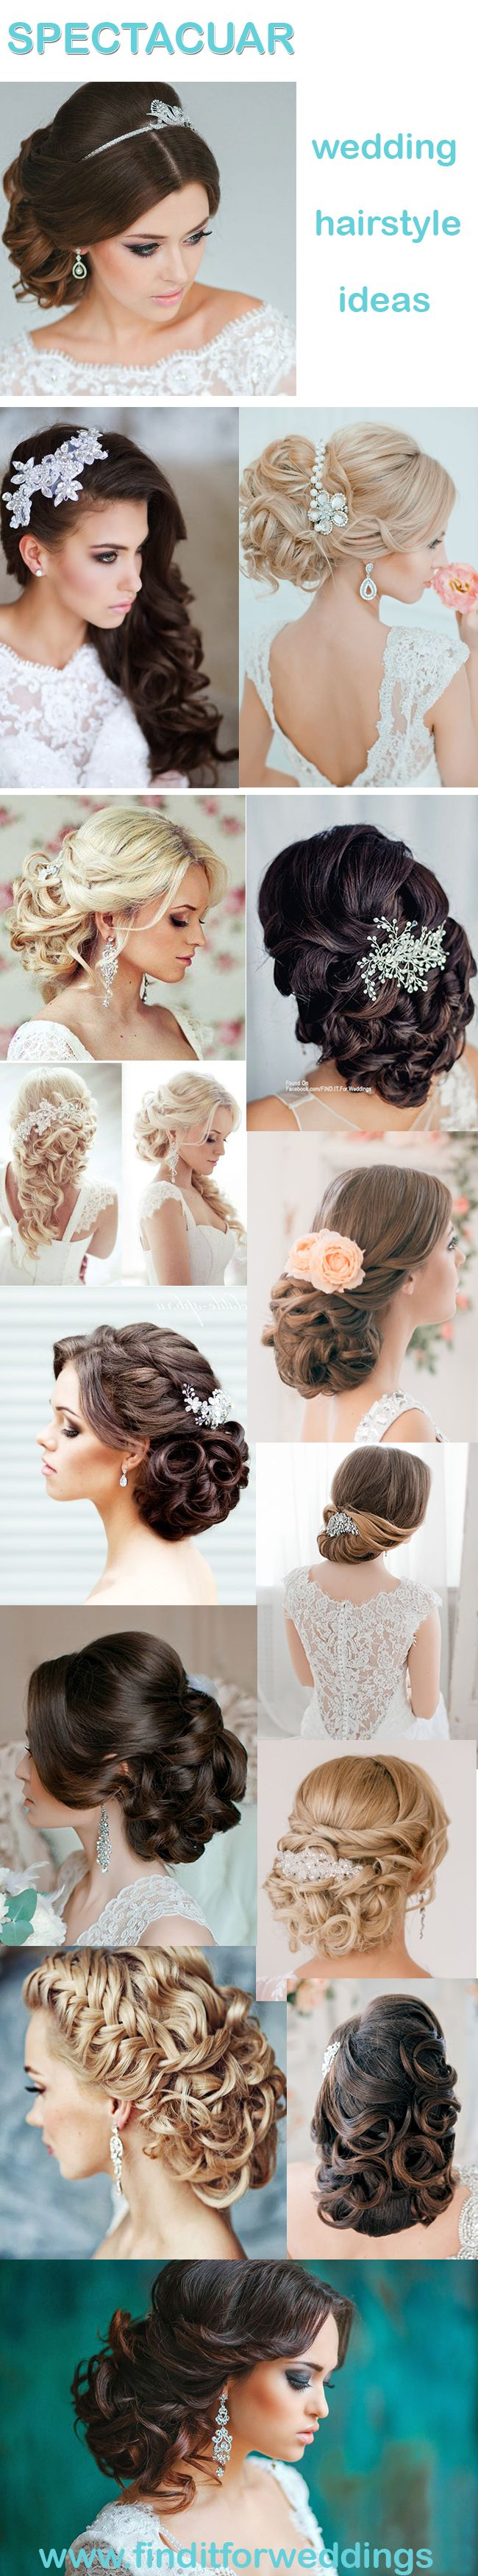 Popular wedding hairstyles that will make you feel like a princess. #wedding #hairstyles